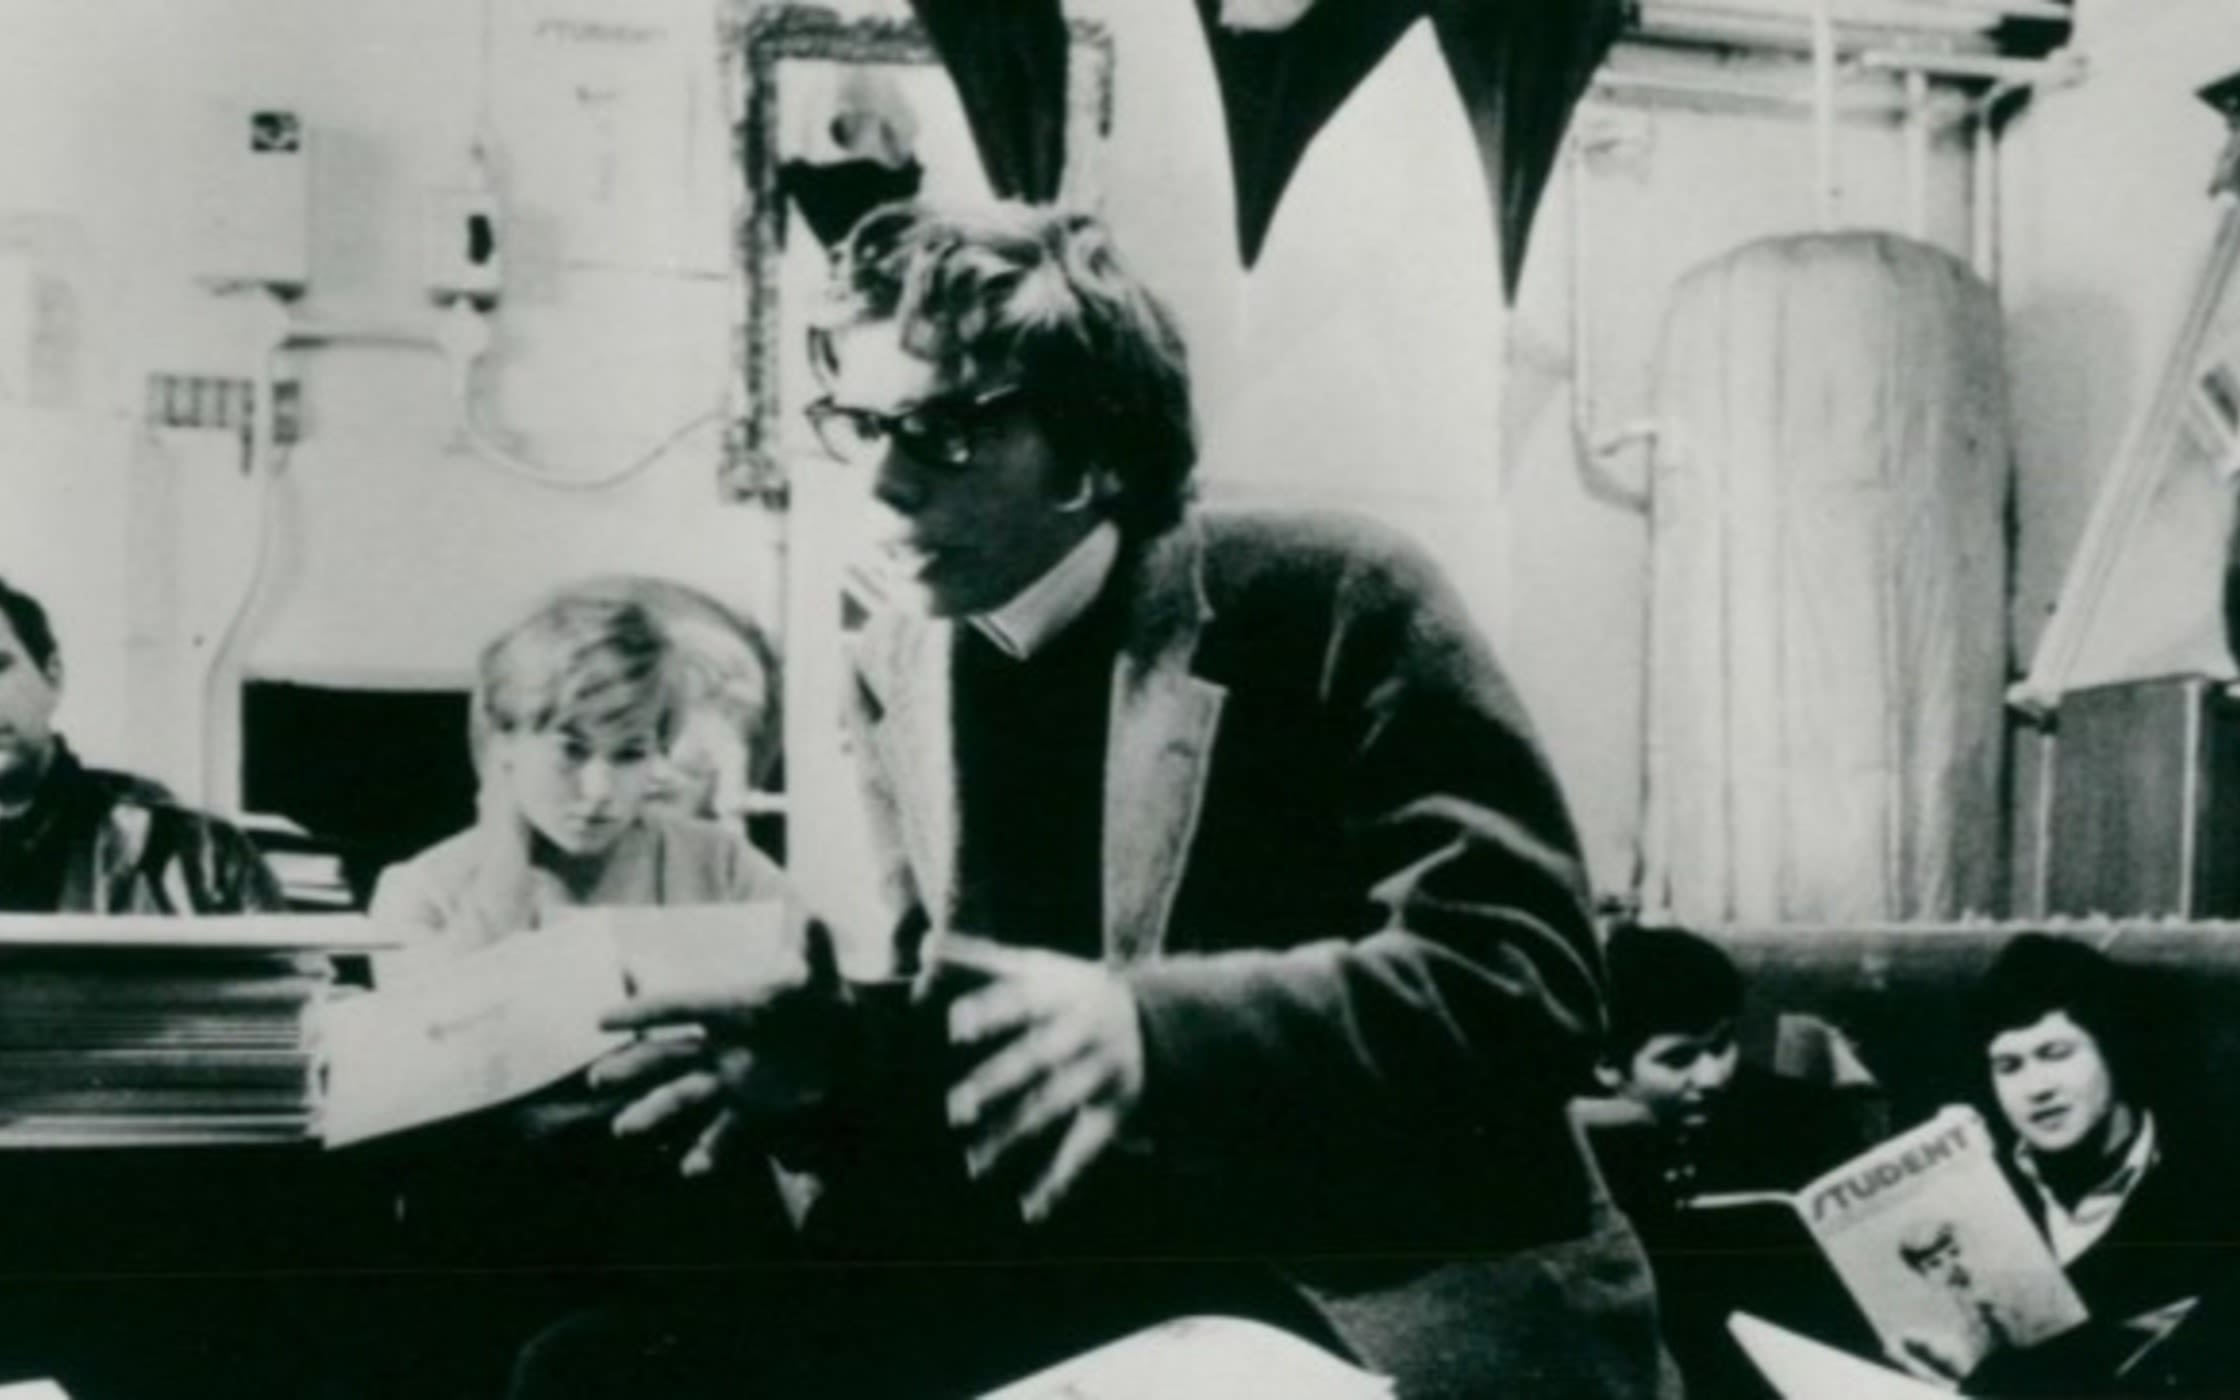 Richard Branson as a student